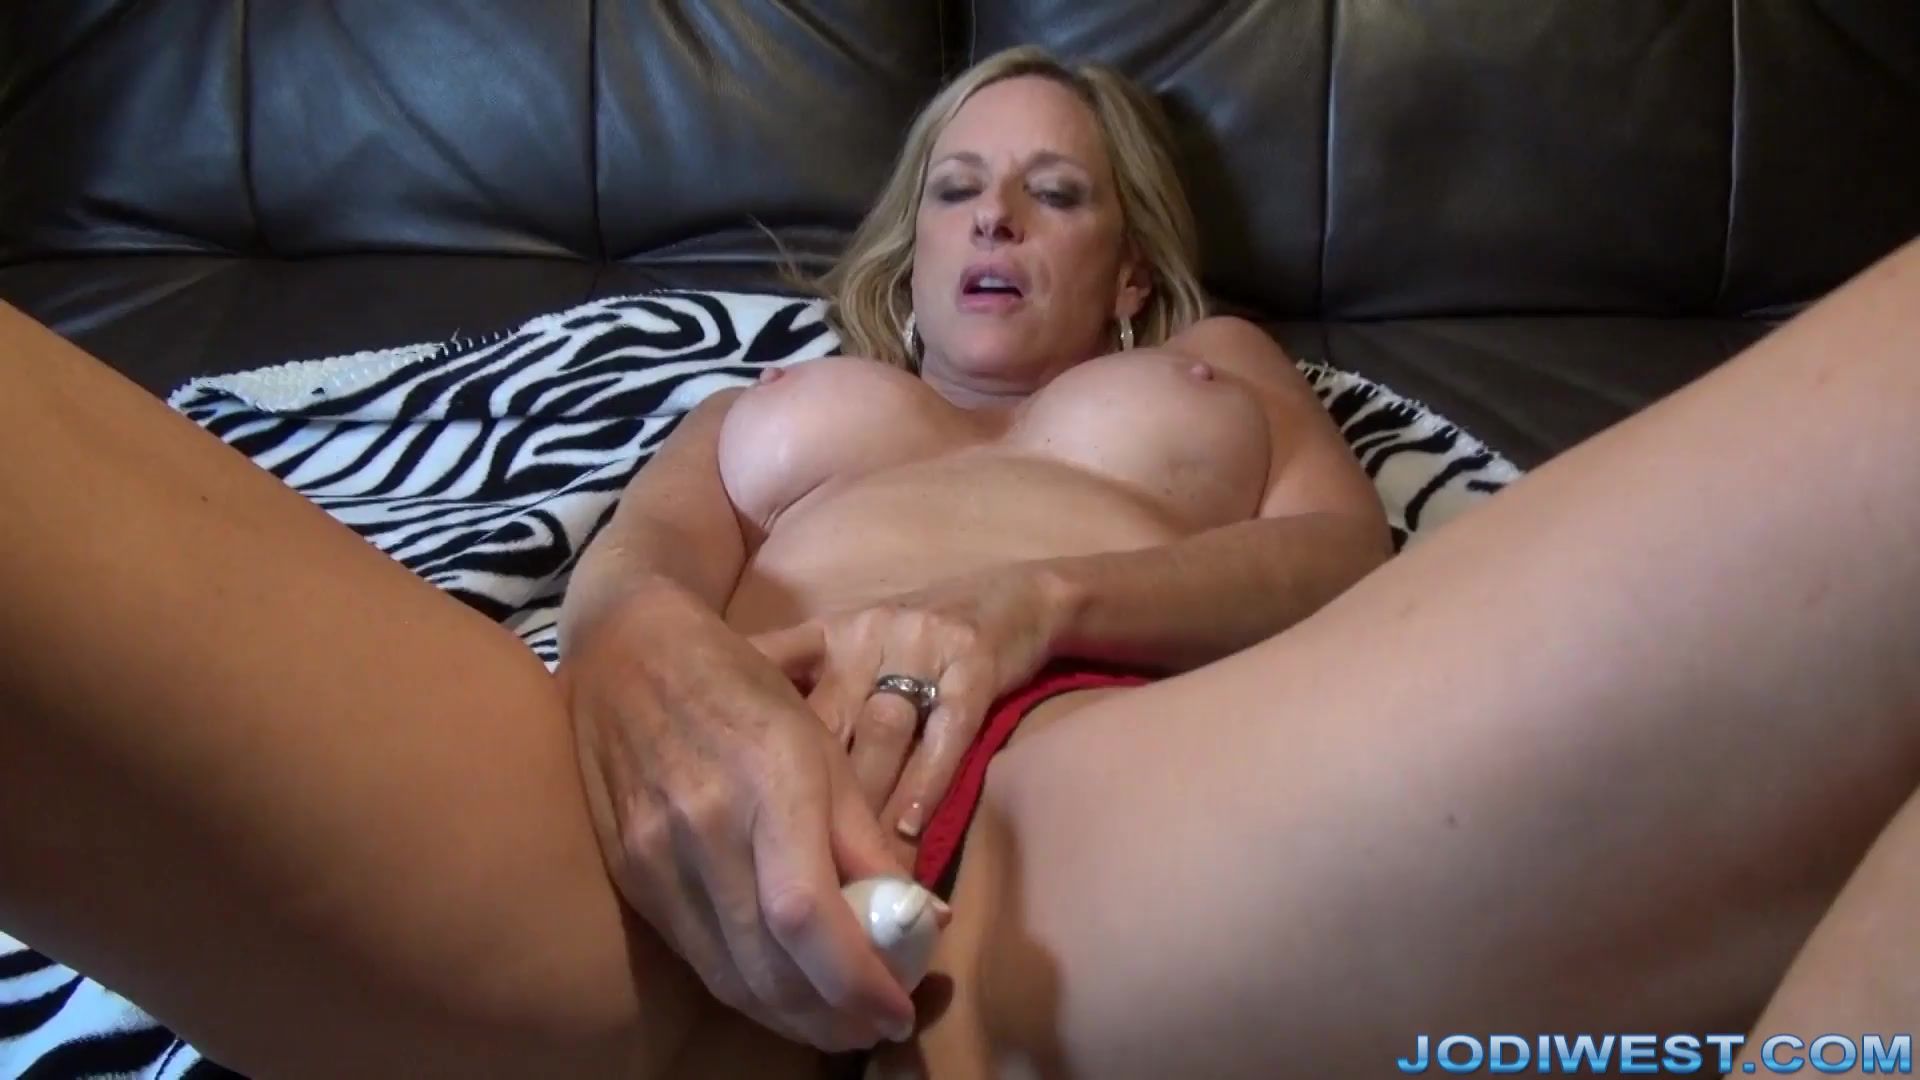 Jodi West Dirty Talk Sex Toy Session image.